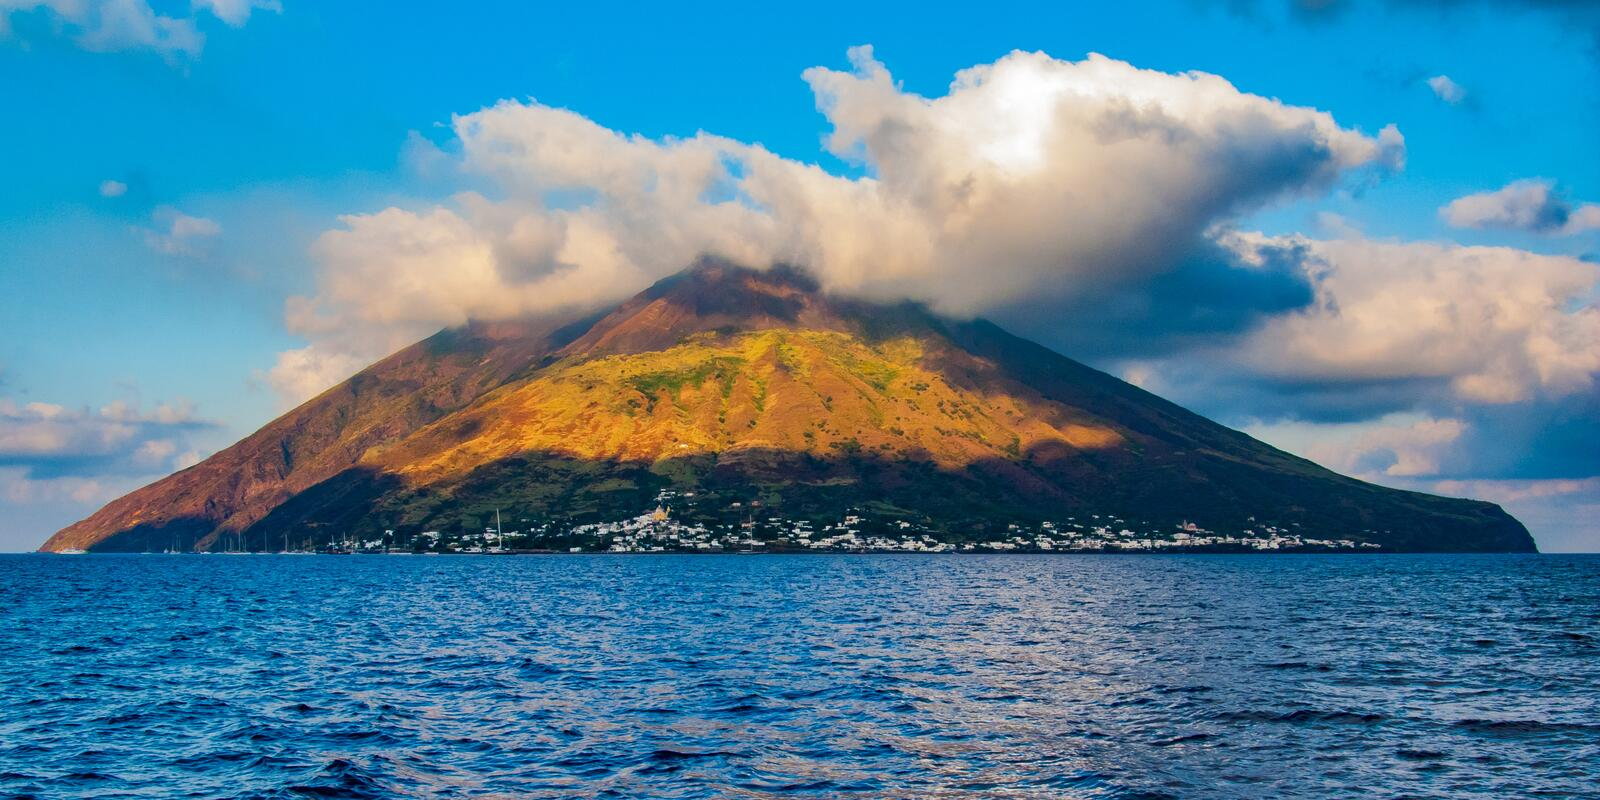 Dream cruise 8 days in catamaran with crew to the Aeolian Islands - All included